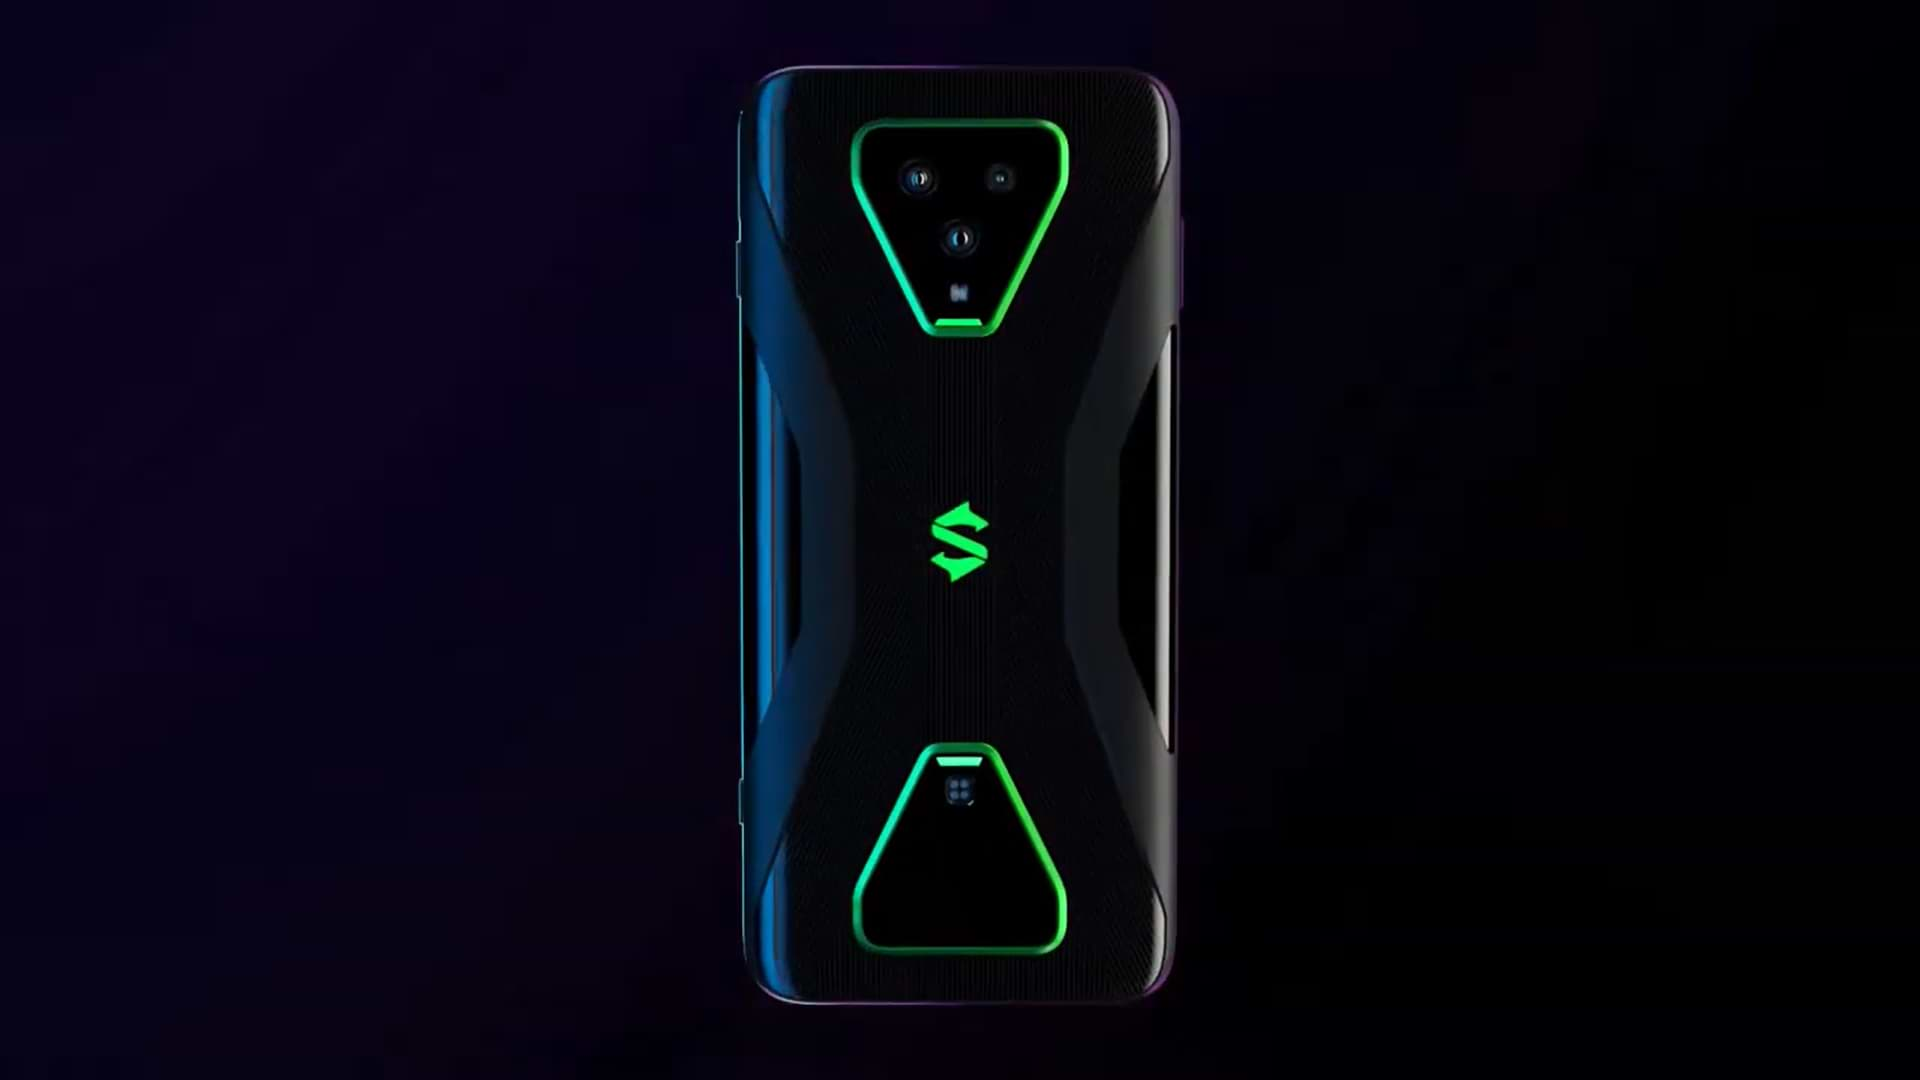 The New Xiaomi Black Shark 3 Gamers Phones Have 5g, Liquid Cooling And Two Built-in Triggers